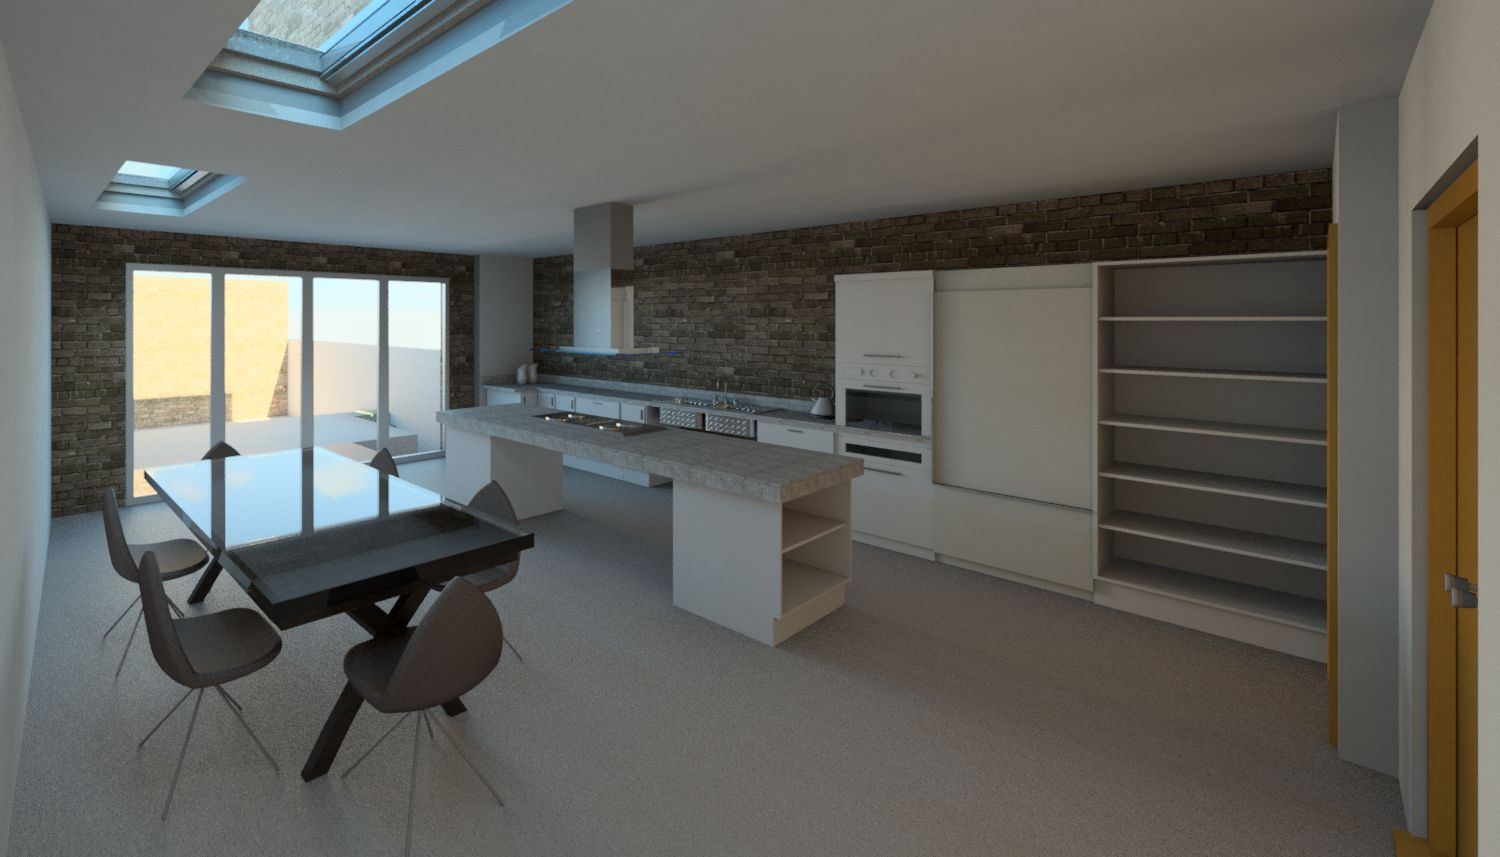 Queensmill Road Kitchen And Dining Room Render Revit By Shape Architecture Pinterestbest